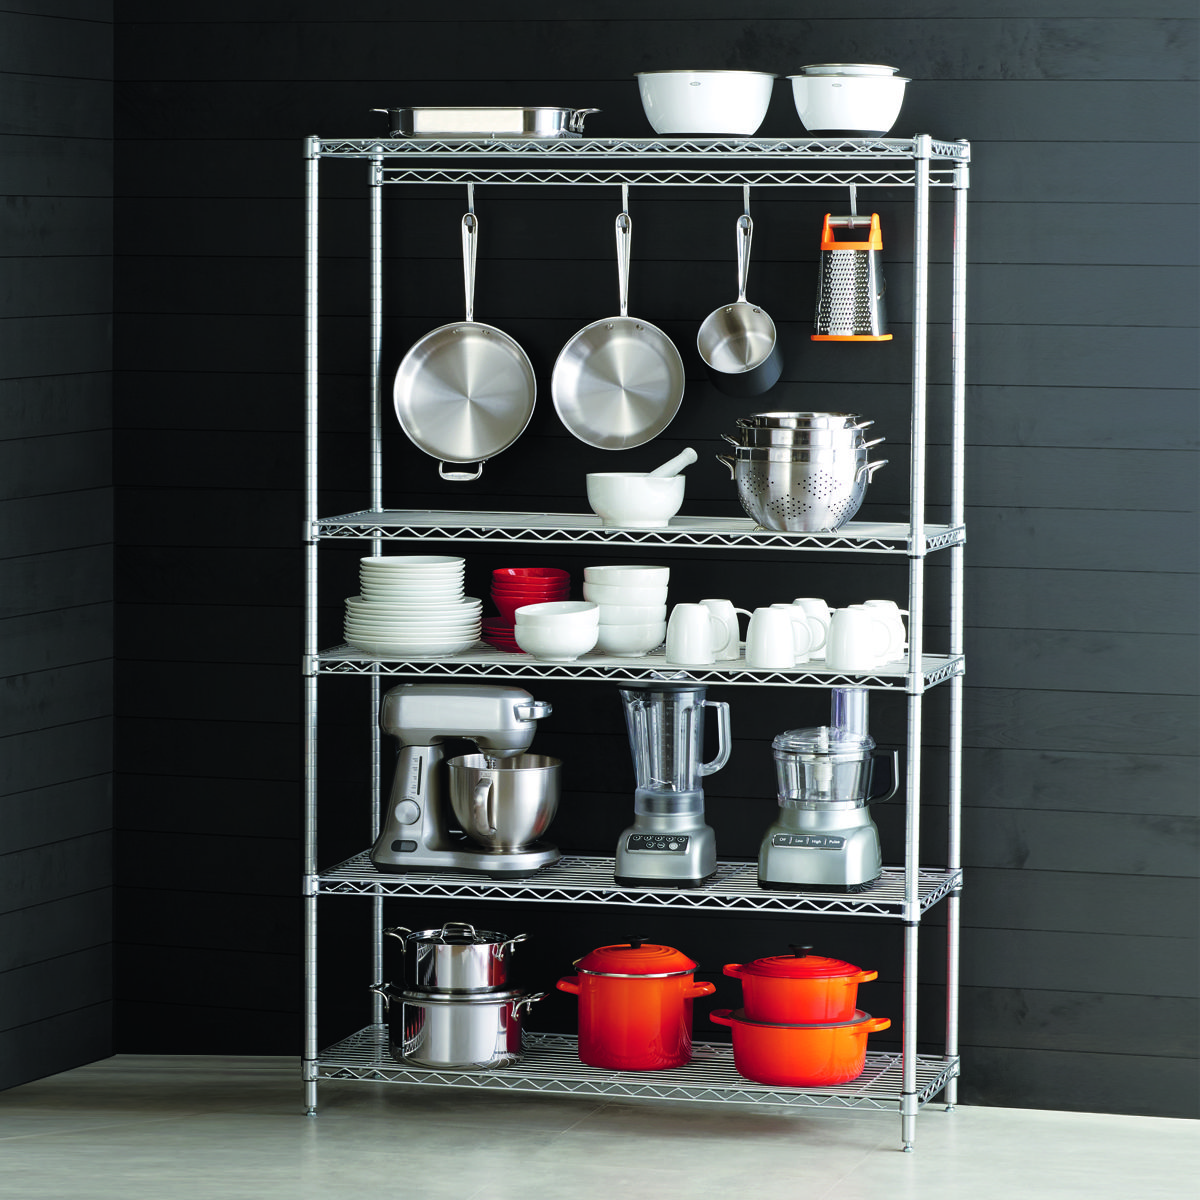 Our InterMetro Kitchen Cookware Storage features Wire